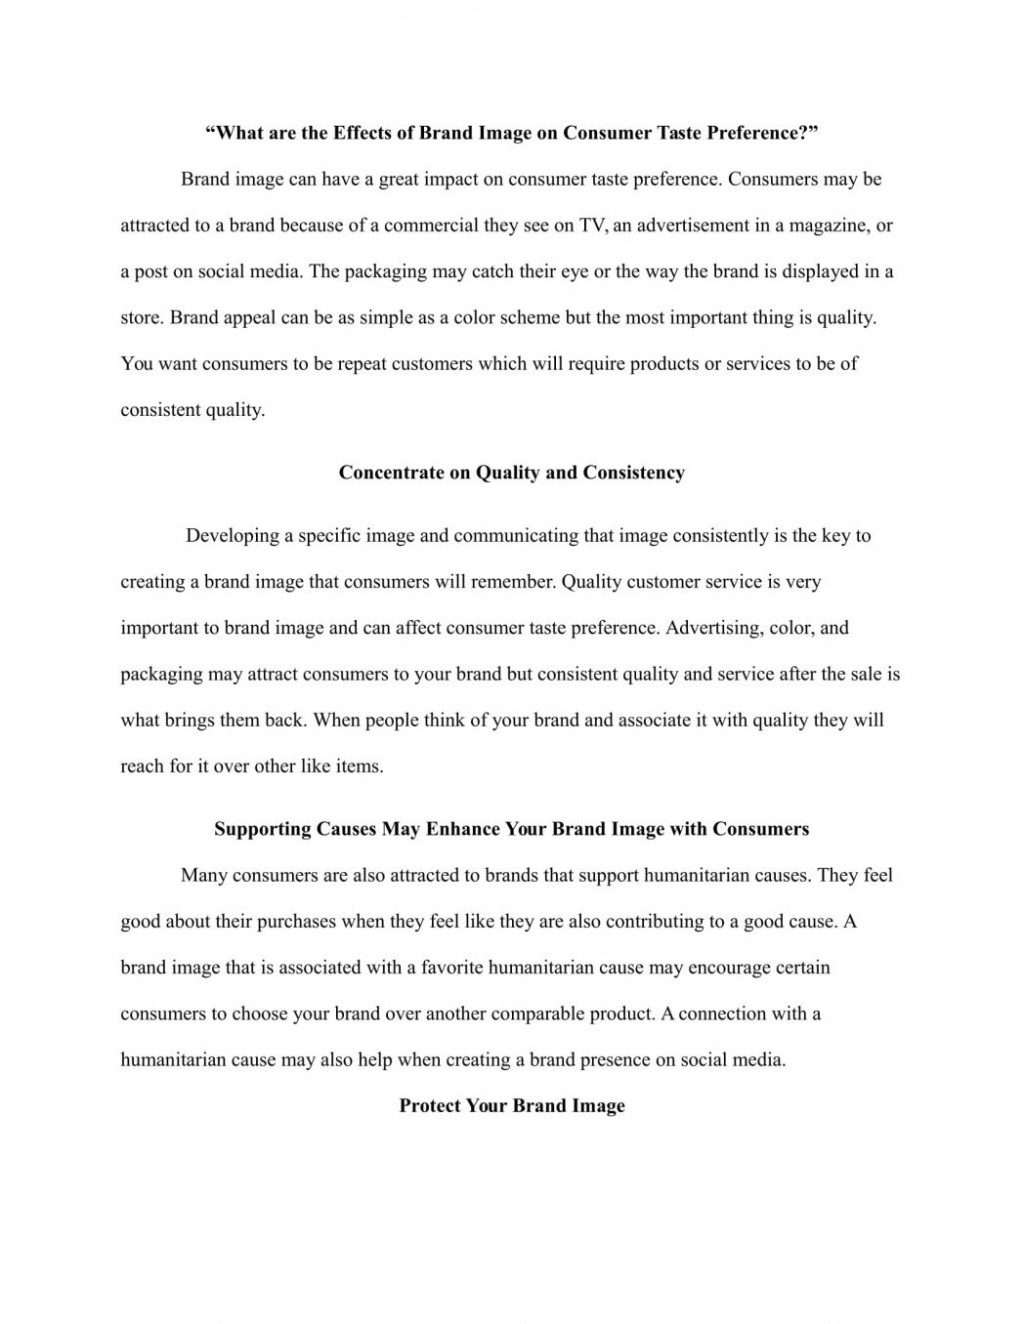 006 Essay File Expository Sample Jpg Volunteer Service Exploratory Topicss Sam Introduction Free Research Thesis 1048x1356 Awful Topics About Medicine For College Sports Large